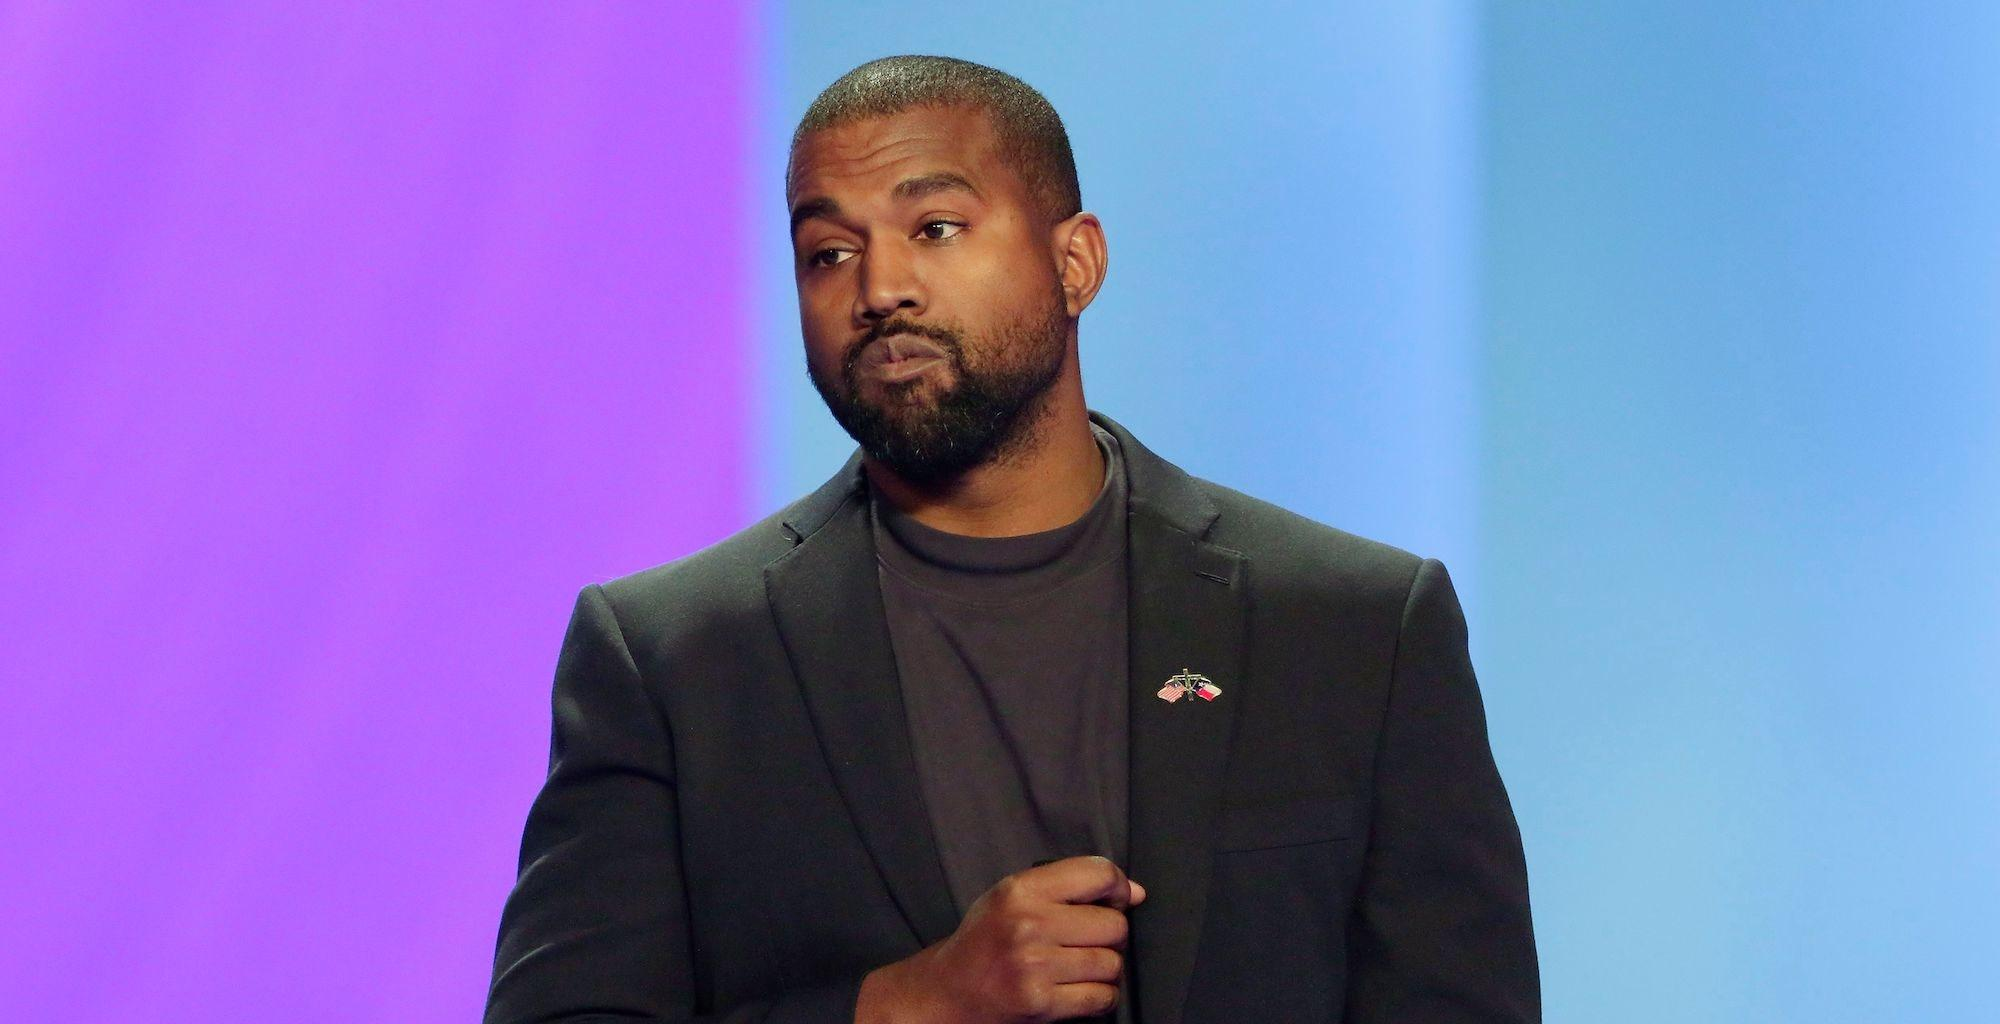 April Ryan Doesn't Want Another President With 'Mental Limitations' - Tells Kanye West To Get Help Instead Of Running For President!